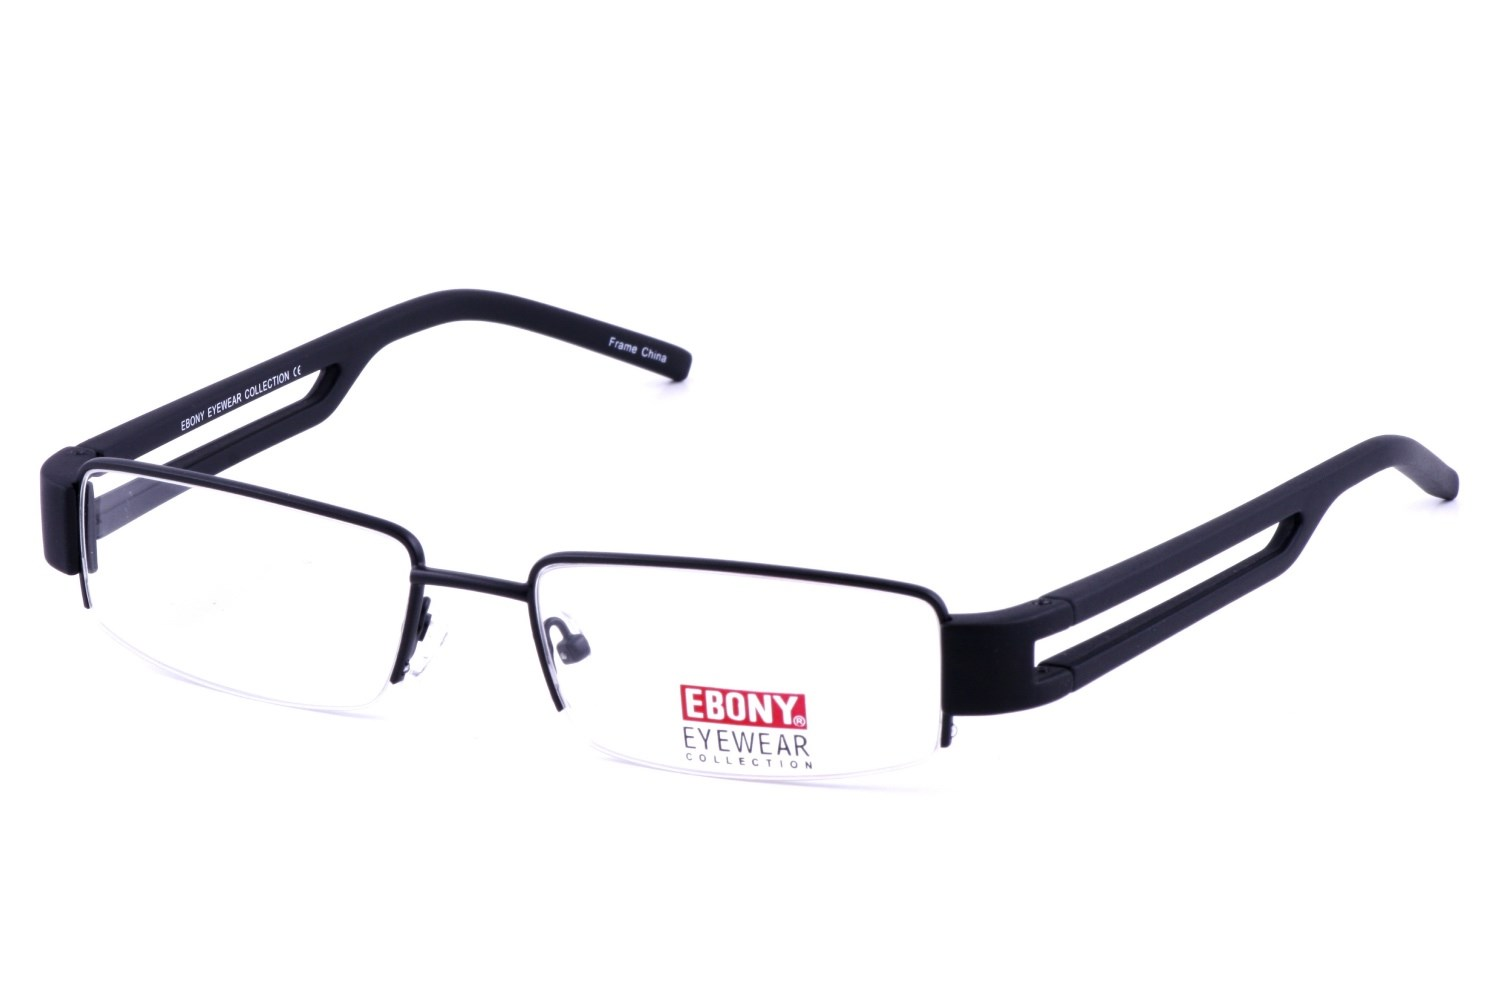 Ebony 11 Prescription Eyeglasses Frames